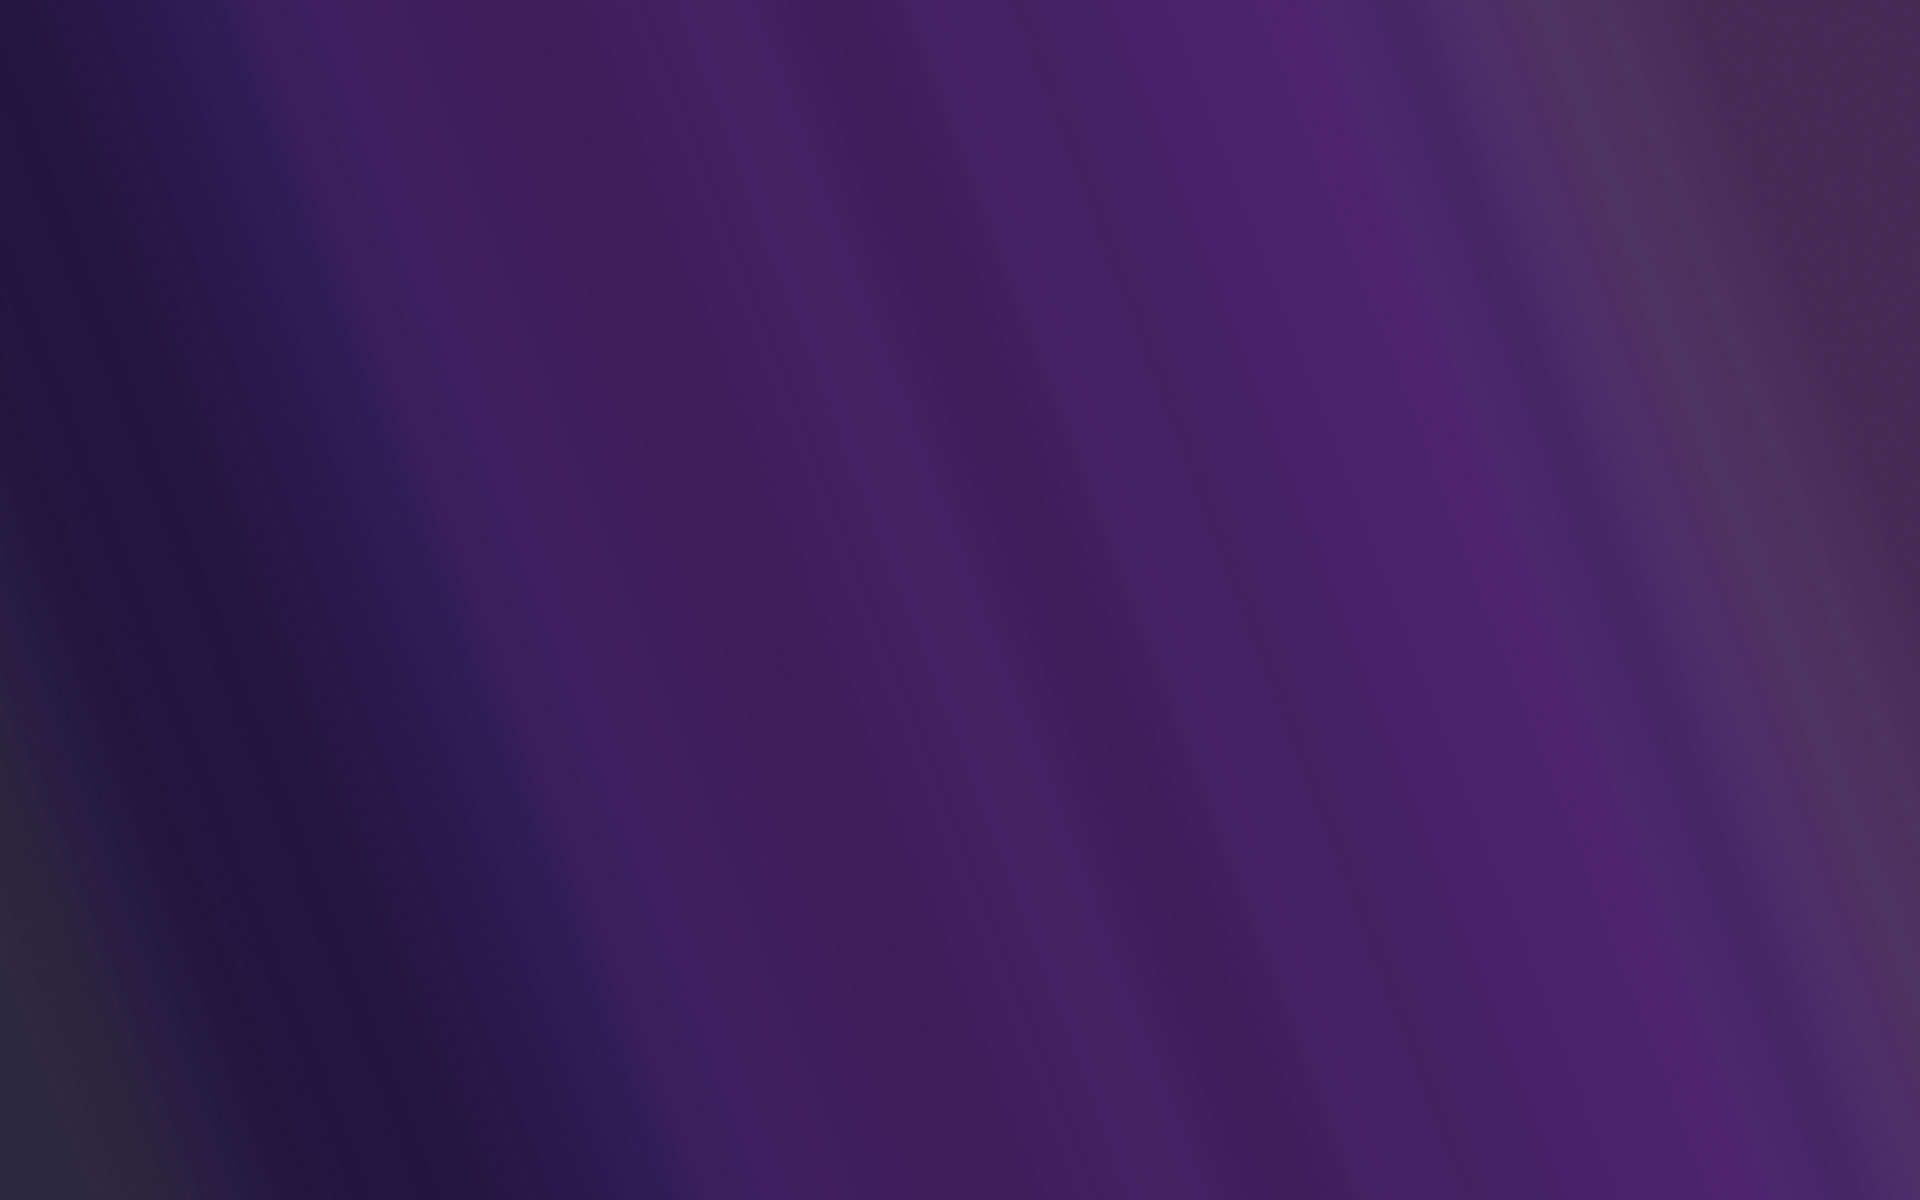 Purple Gradient Background Wallpaper Image Rosemary Thomas 1920x1200